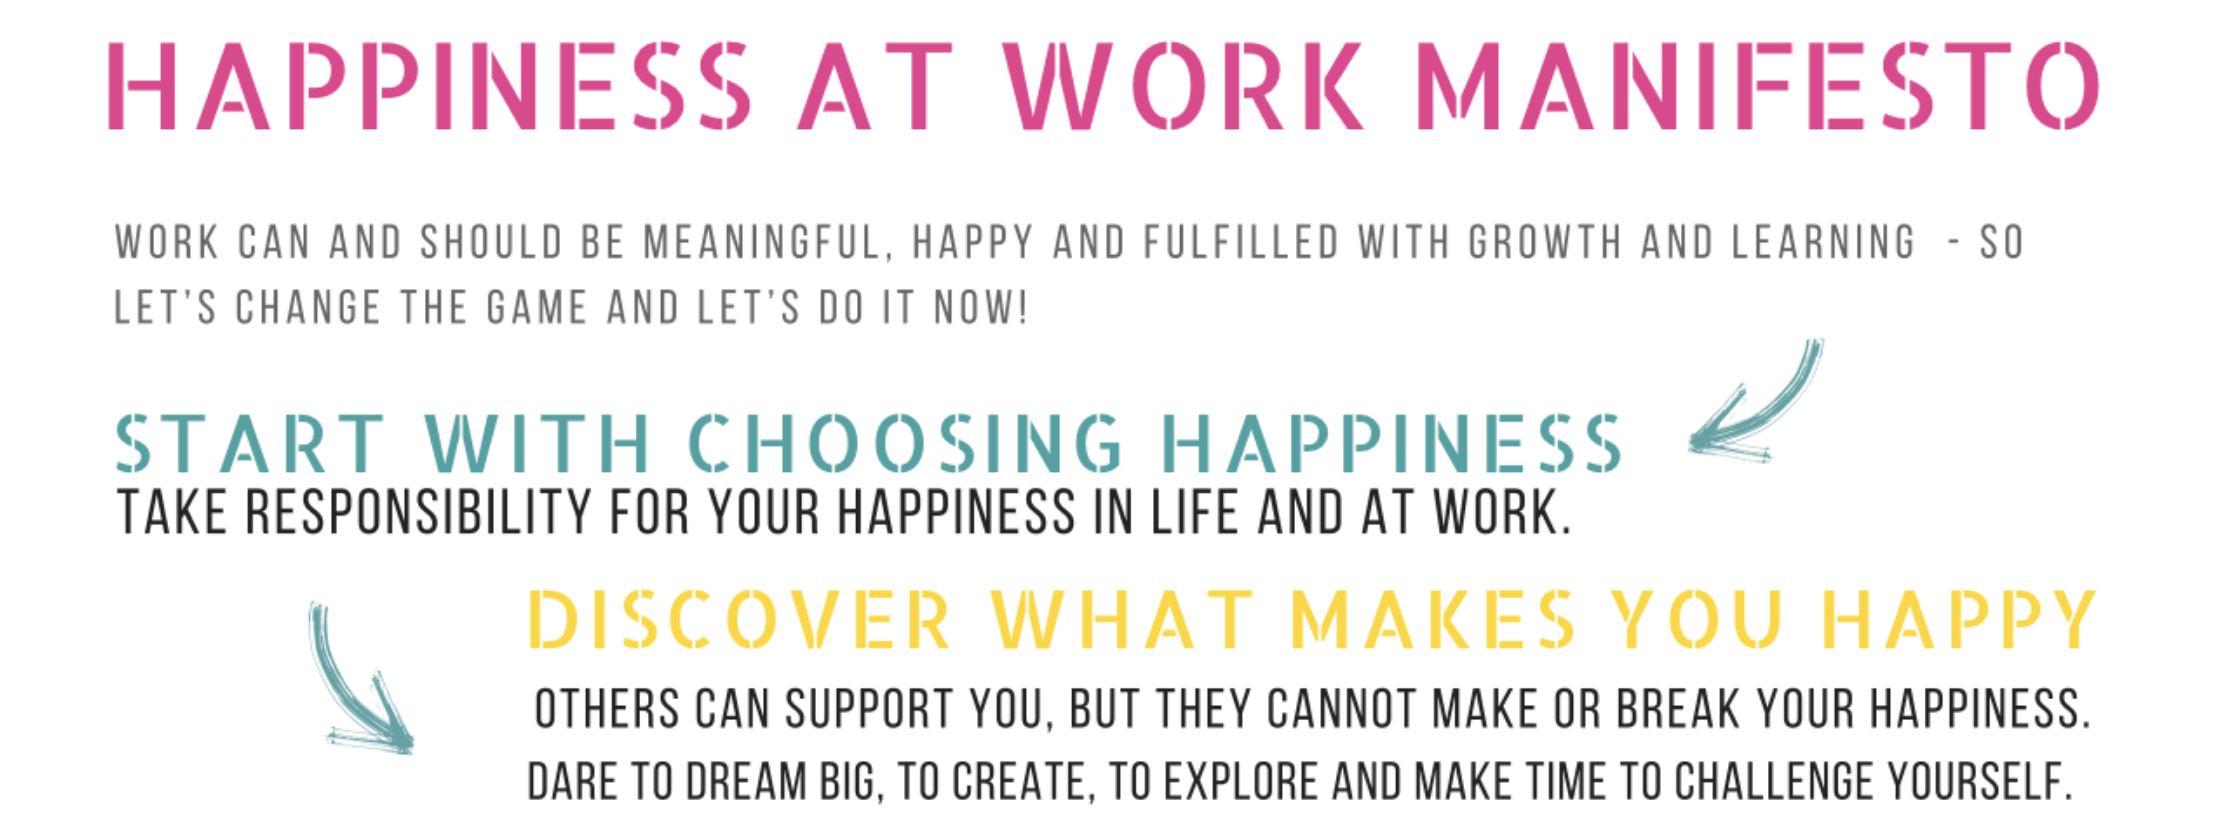 Croatia joins the International Week of Happiness at Work